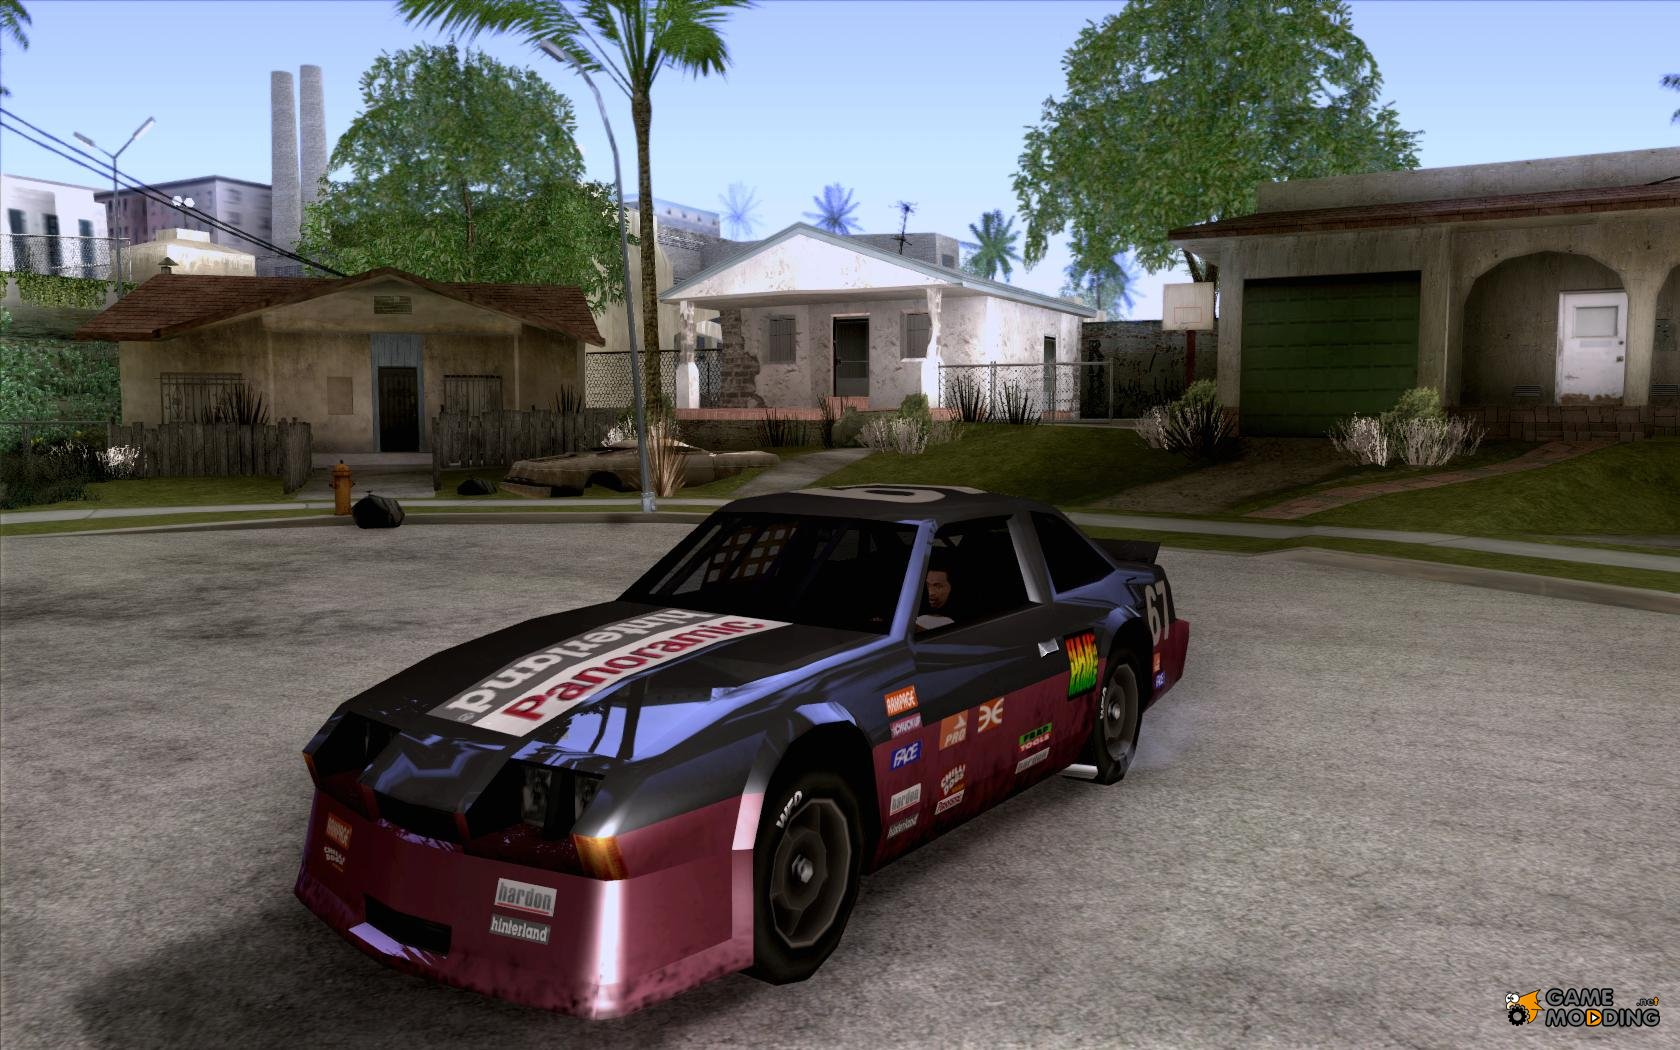 Codes Cheats For Gta San Andreas All Codes For Cars Money Weapons